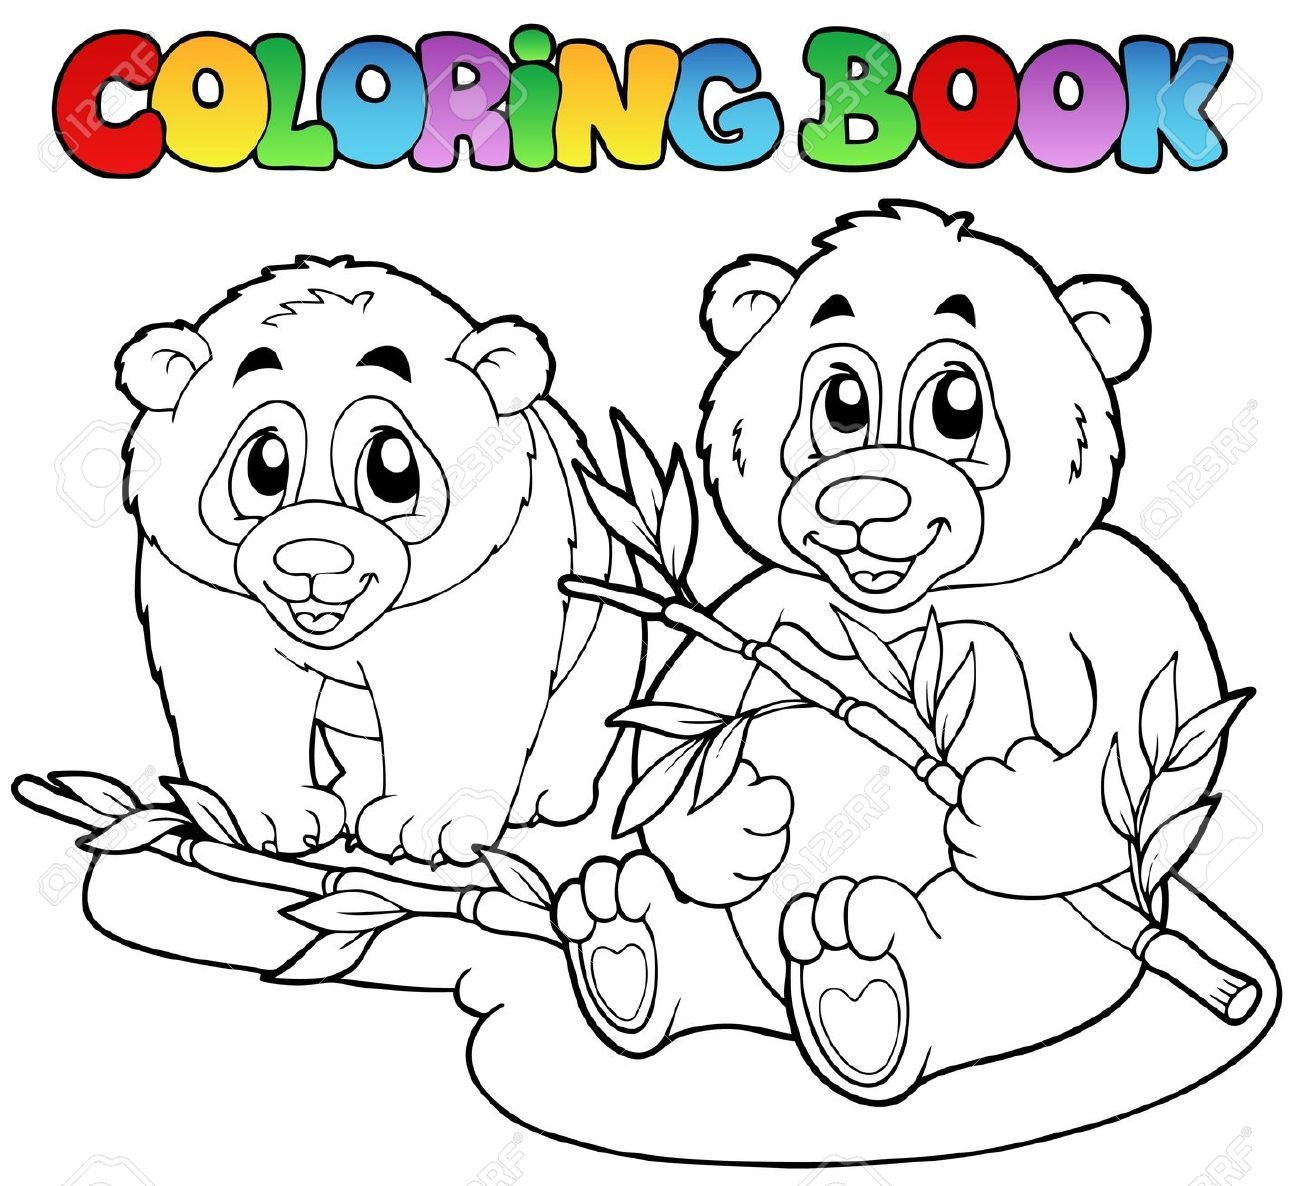 Coloring book with two pandas vector illustration